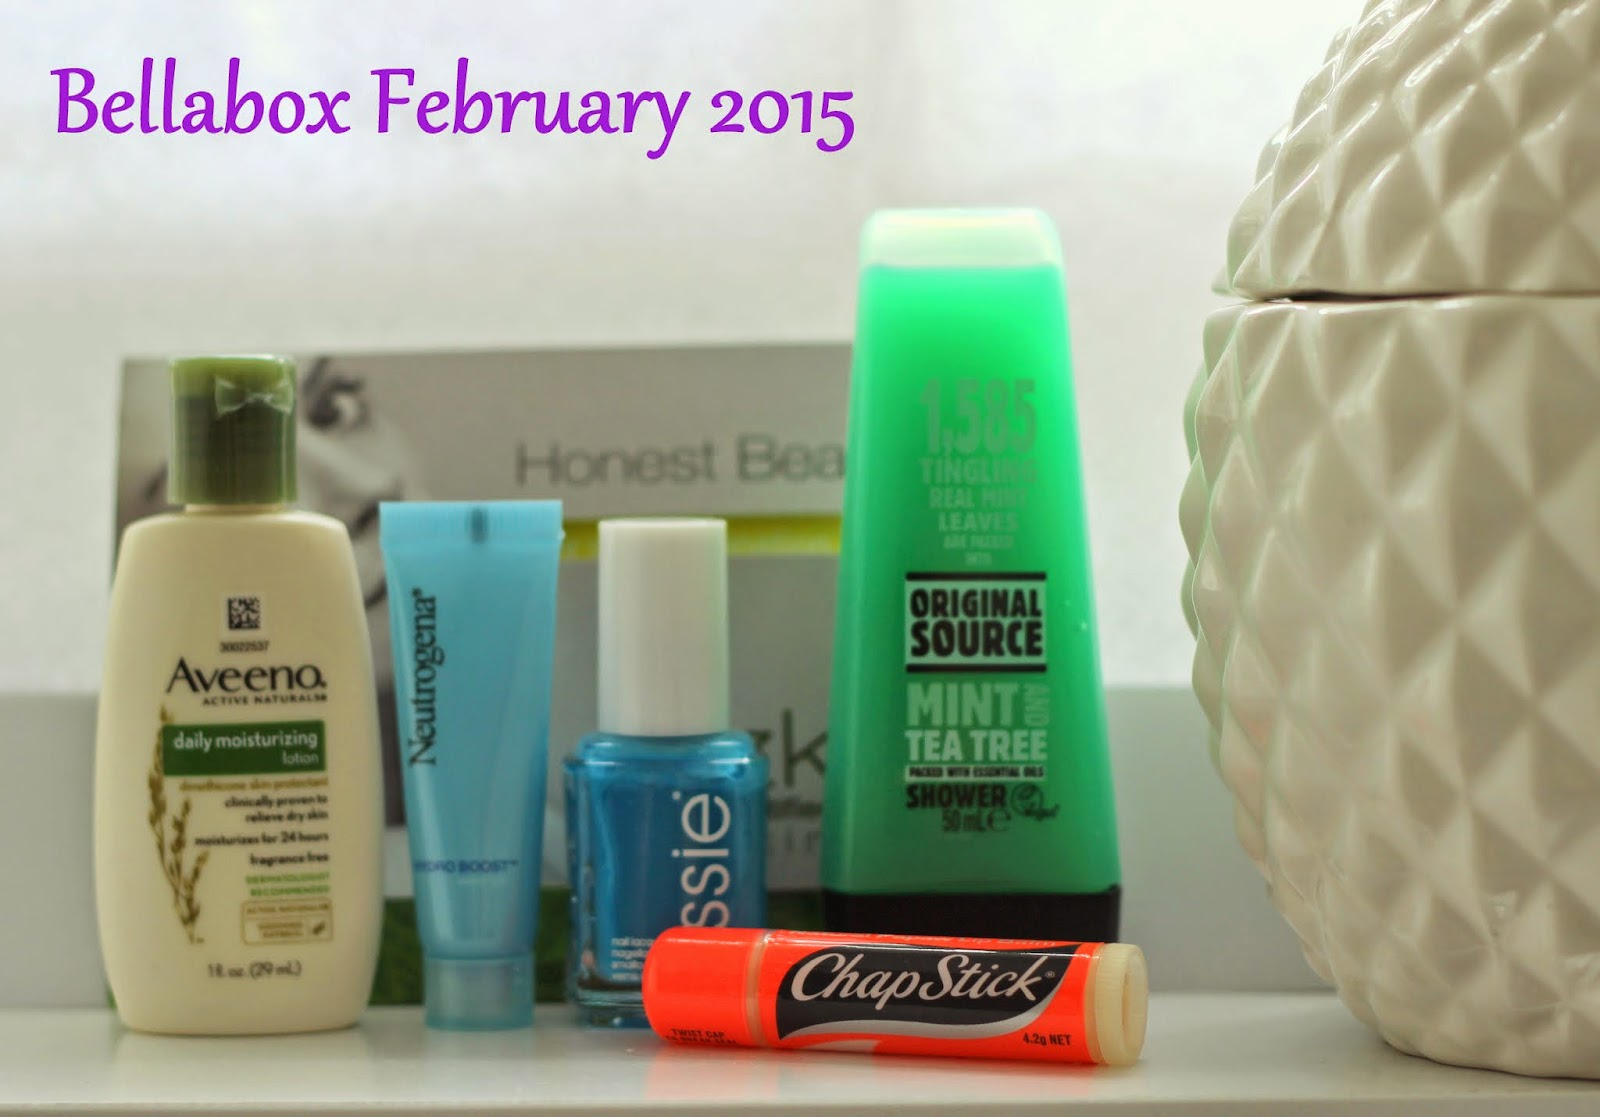 bellabox, beauty box, subscription services,